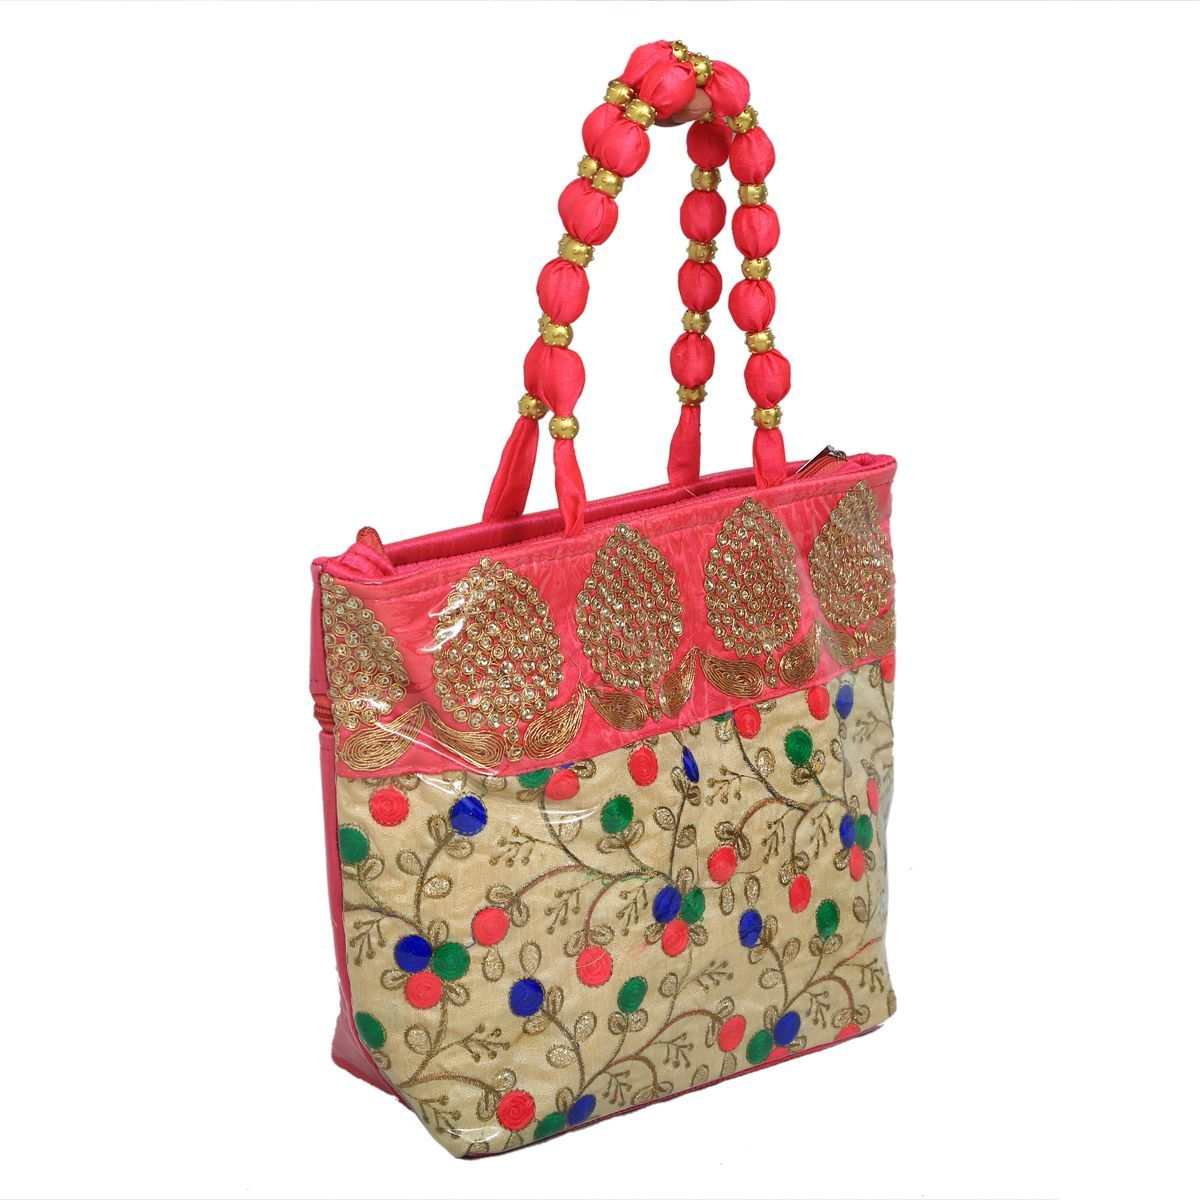 Kuber Industries™ Women Stylish Handbag Fully Laminated (Traditional Design), Pink - BG25